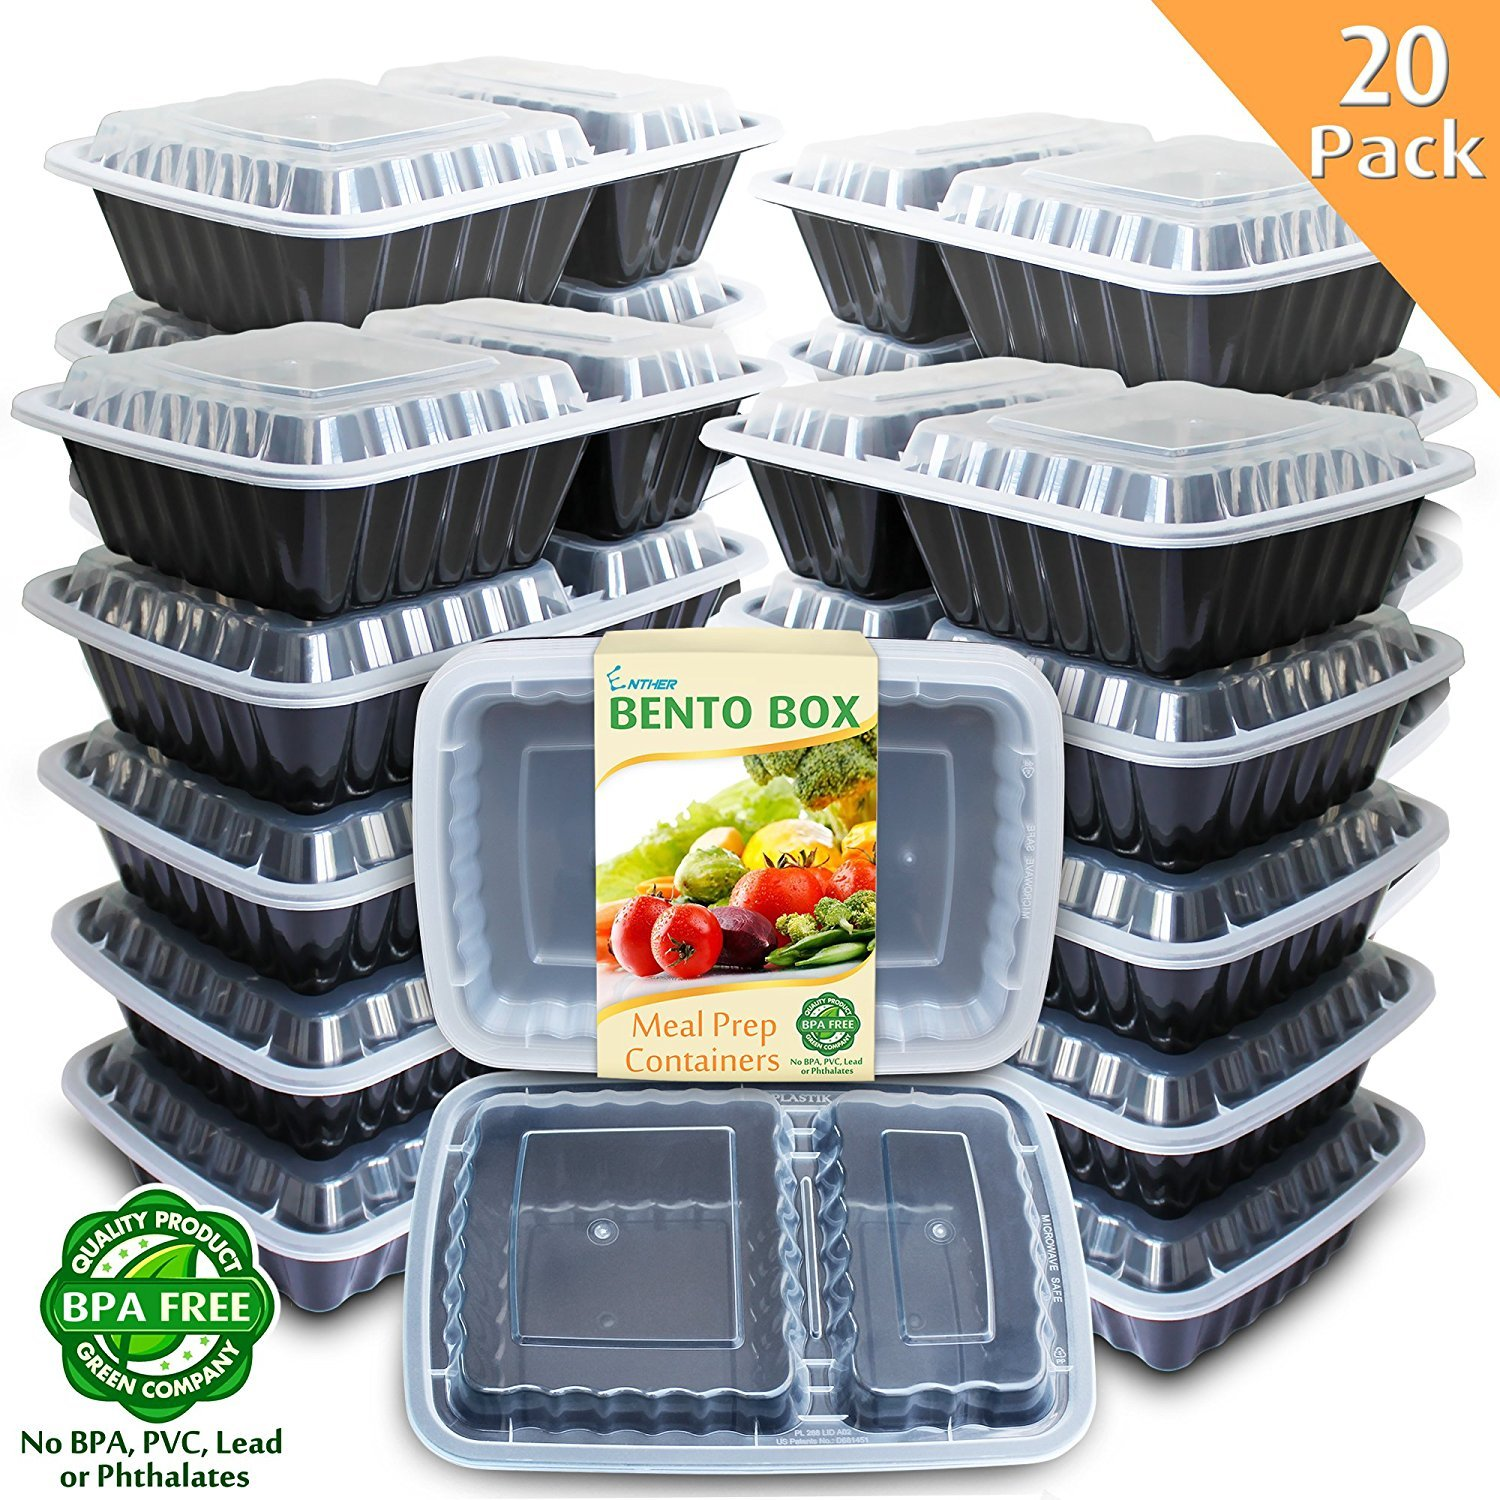 Save 43% on Meal Prep Containe...